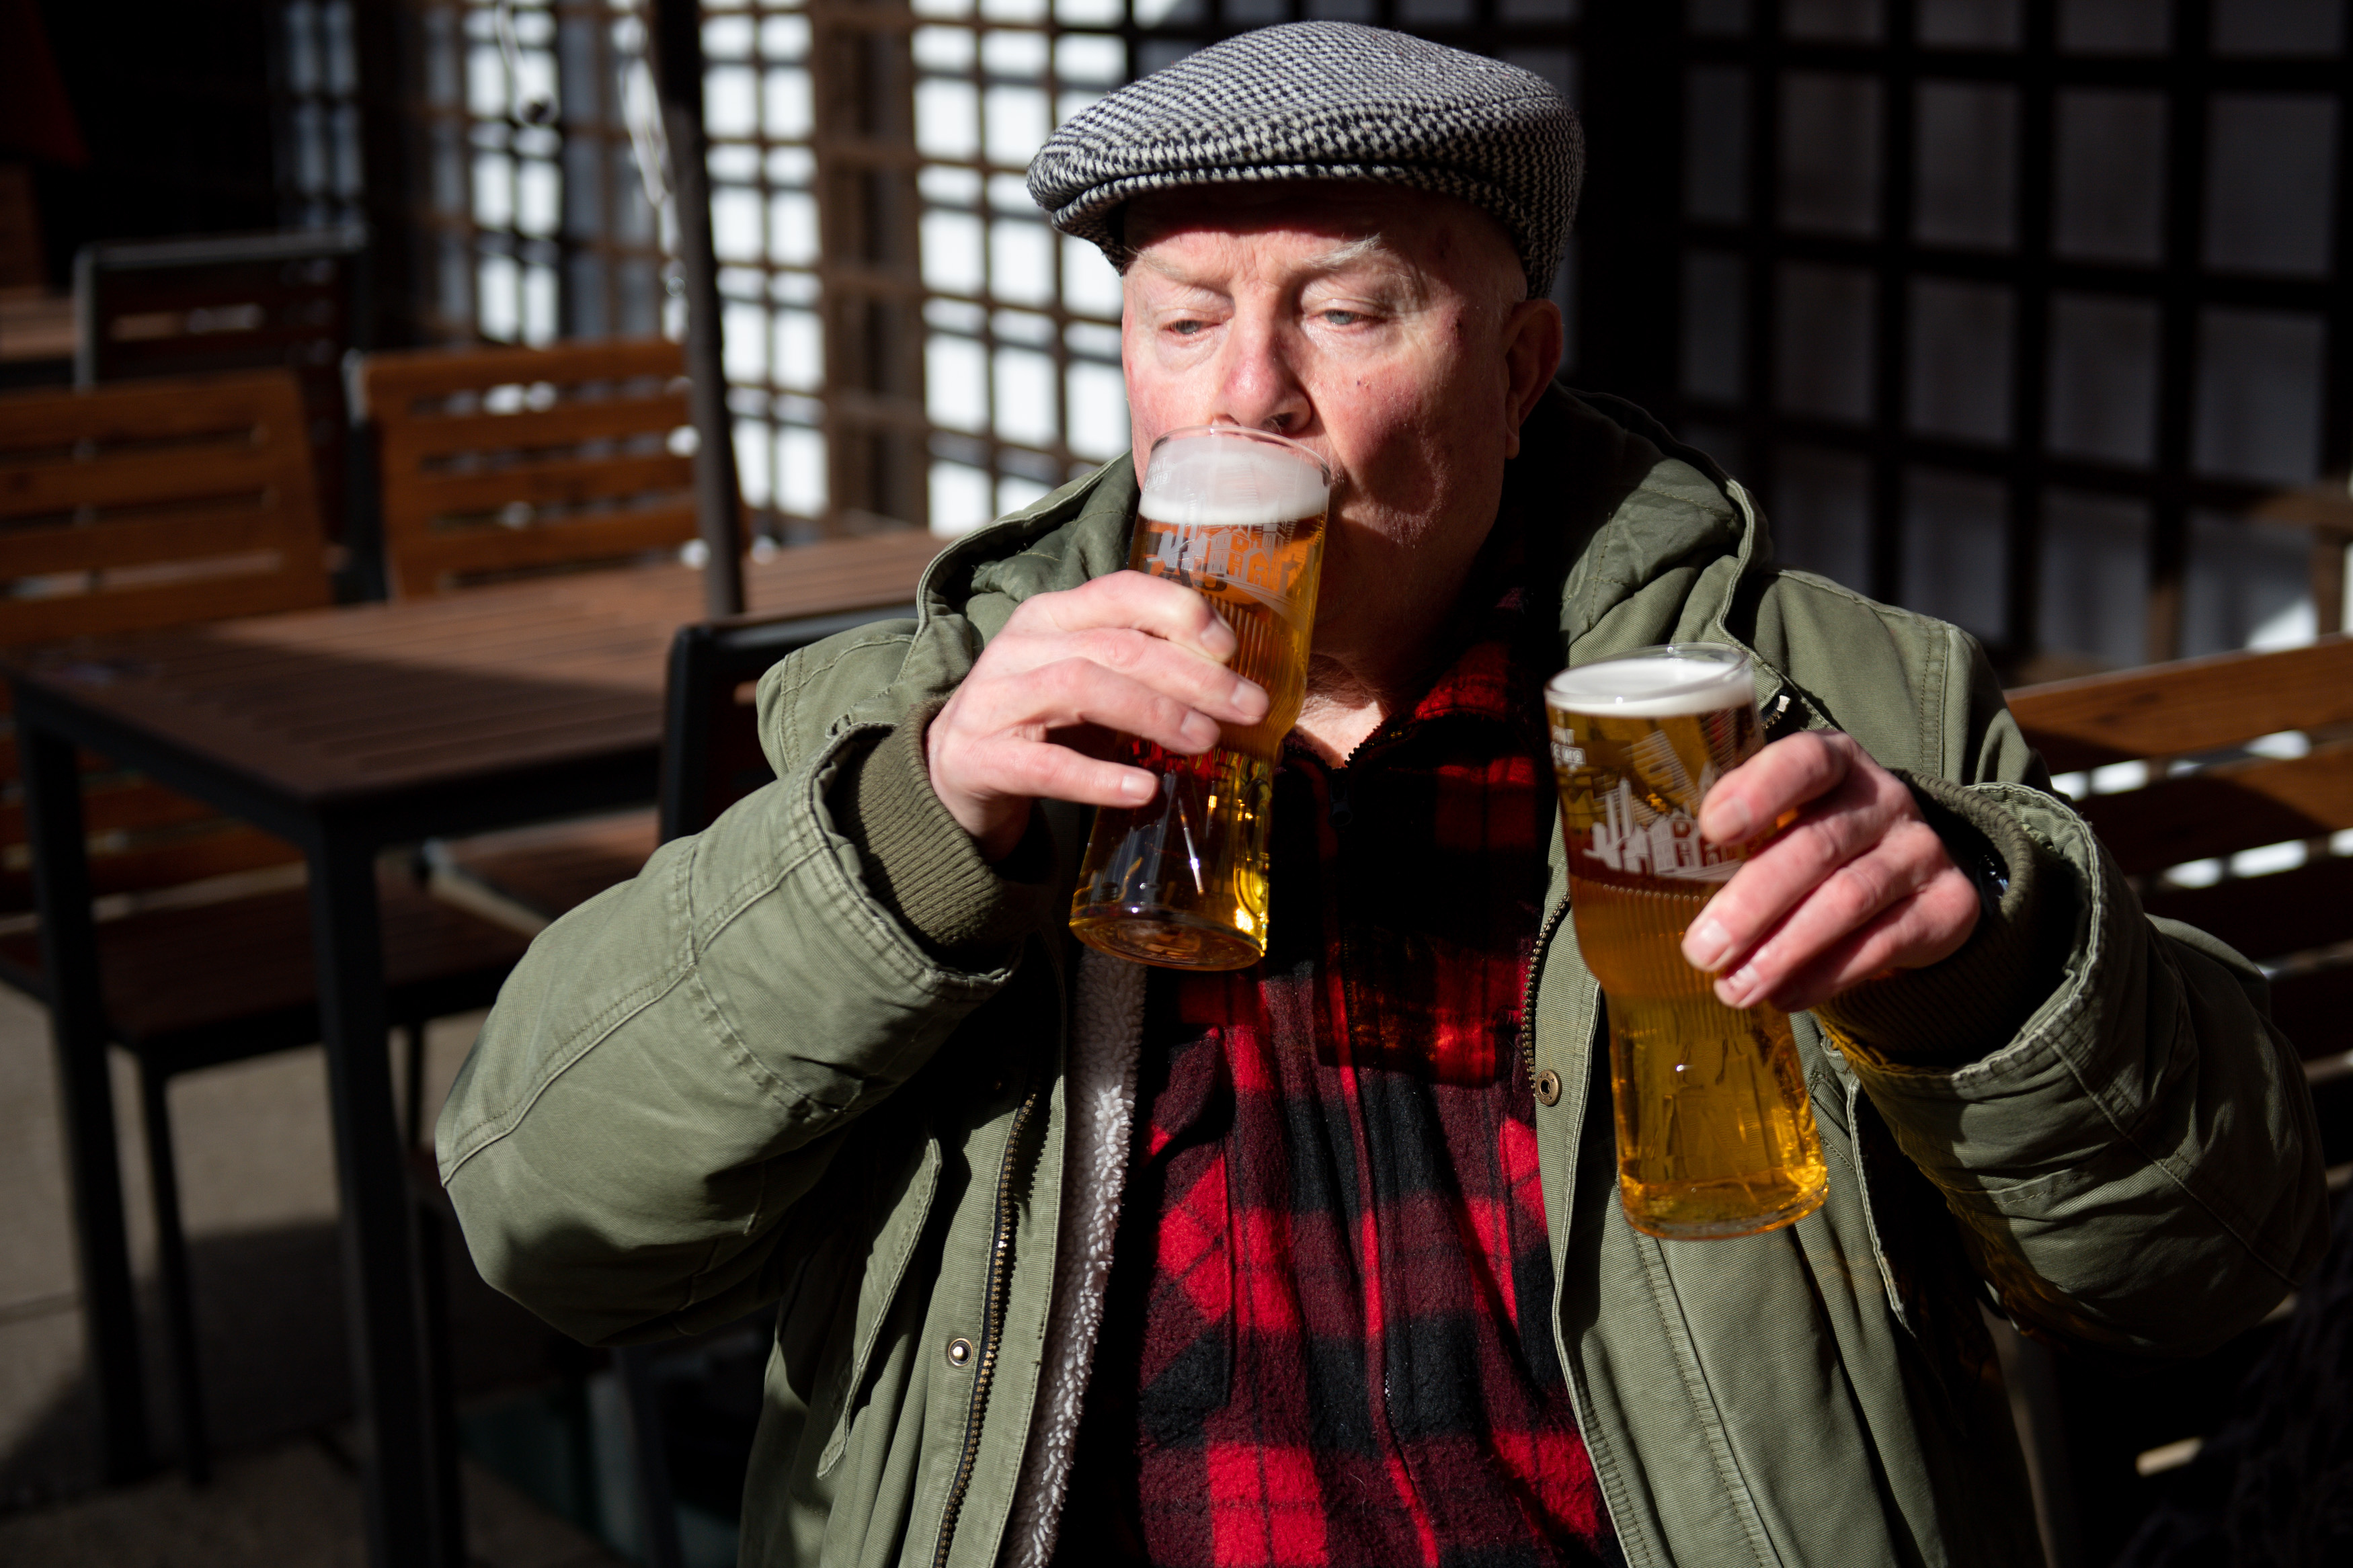 <p>John Witts enjoys a drink at the reopening of the Figure of Eight pub, in Birmingham, as England takes another step back towards normality with the further easing of lockdown restrictions. Picture date: Monday April 12, 2021.</p>